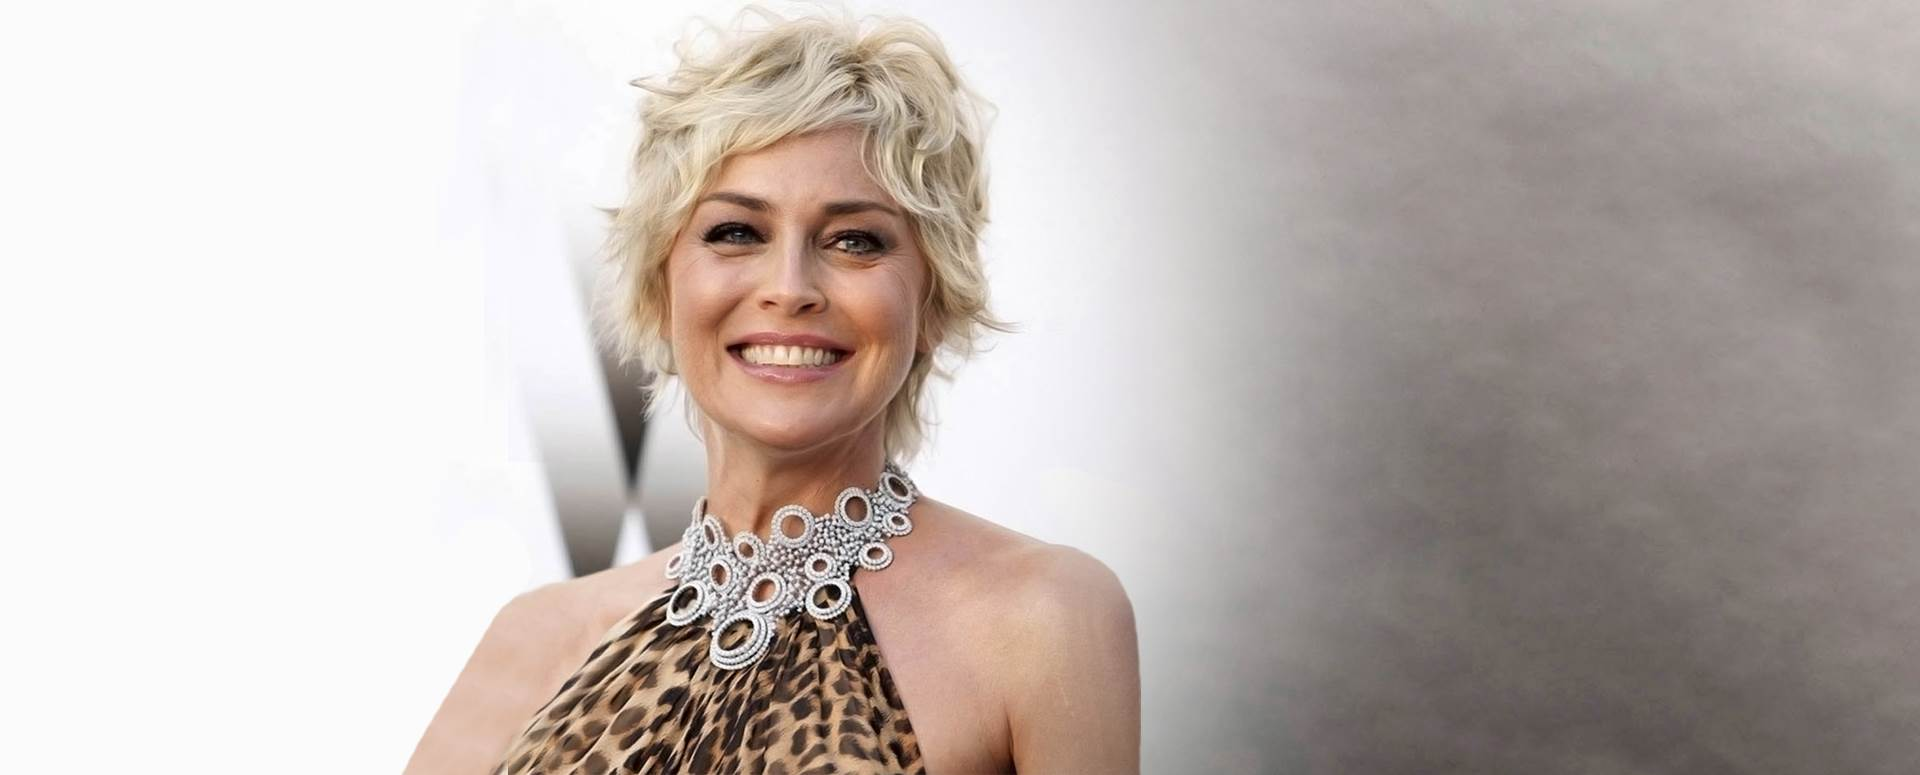 Book Sharon Stone For Speaking Events And Appearances